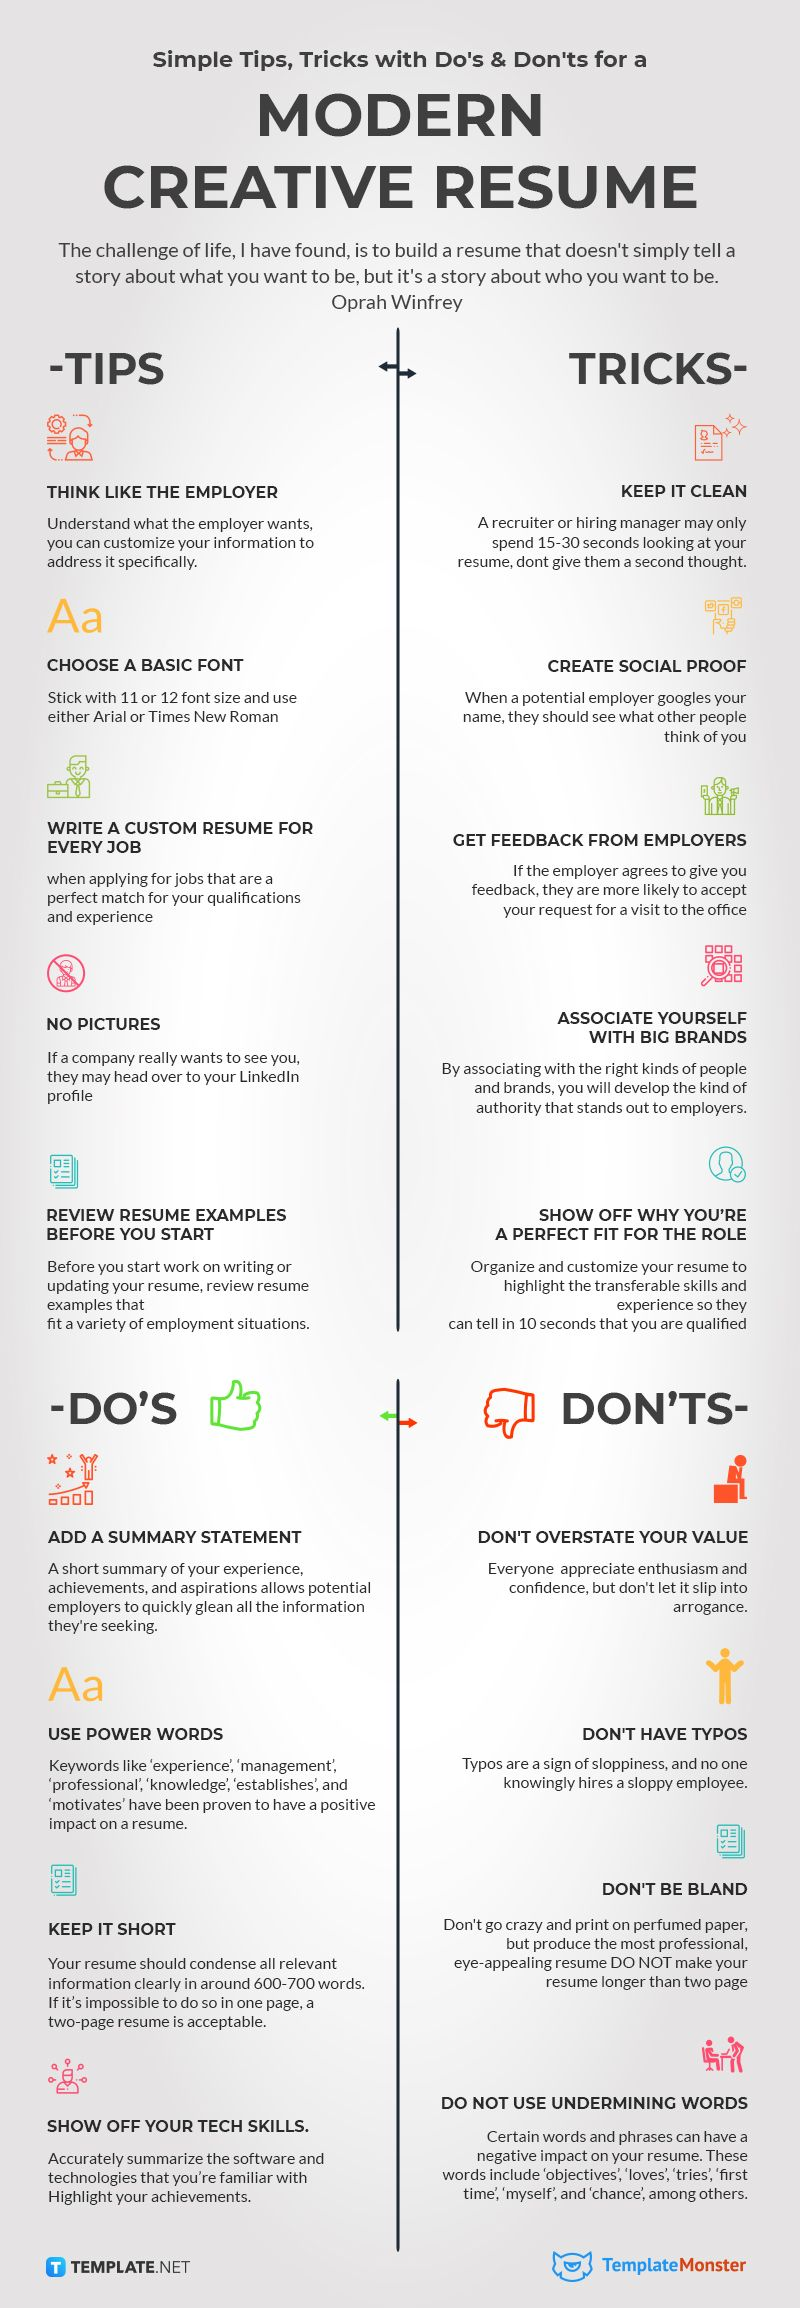 Tips and Tricks how to create good resume.